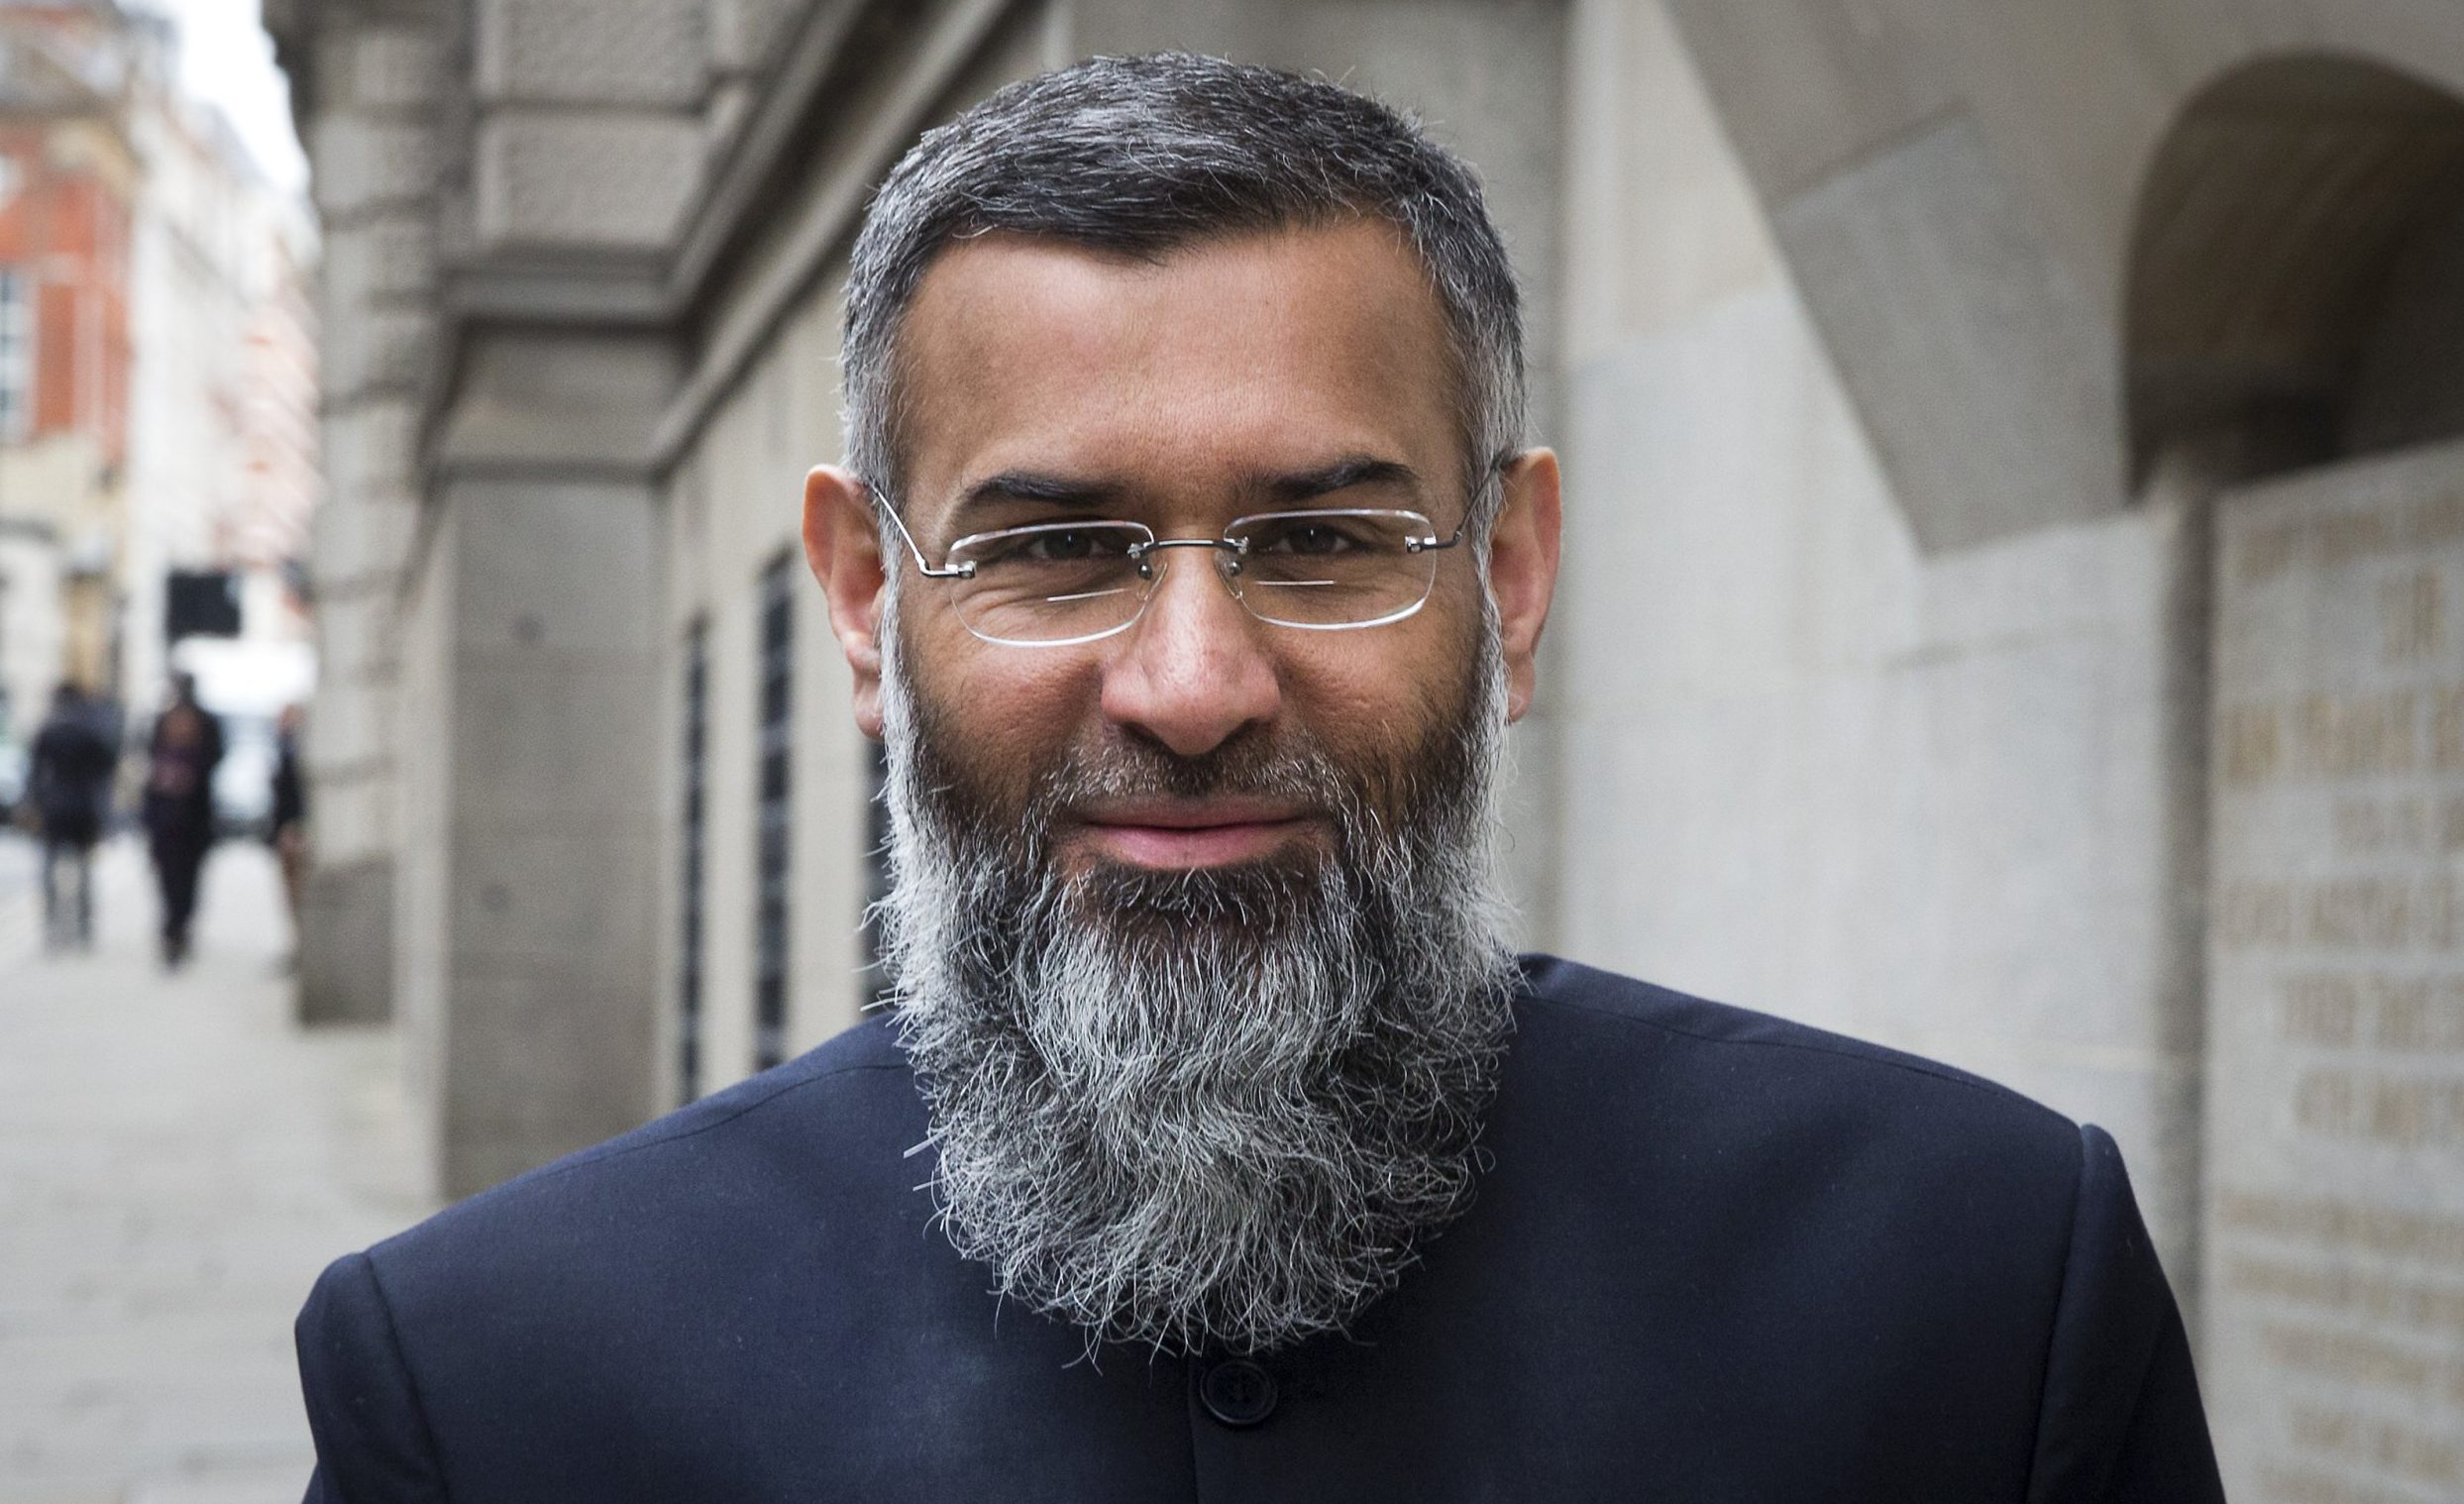 Radical preacher Anjem Choudary arrives at The Old Bailey Anjem Choudary court hearing, London, Britain - 24 Mar 2016 Choudary is alleged to have invited support for the Islamic State group in individual lectures which were subsequently posted online. Mandatory Credit: Photo by Peter MacDiarmid/REX/Shutterstock (5619104d)